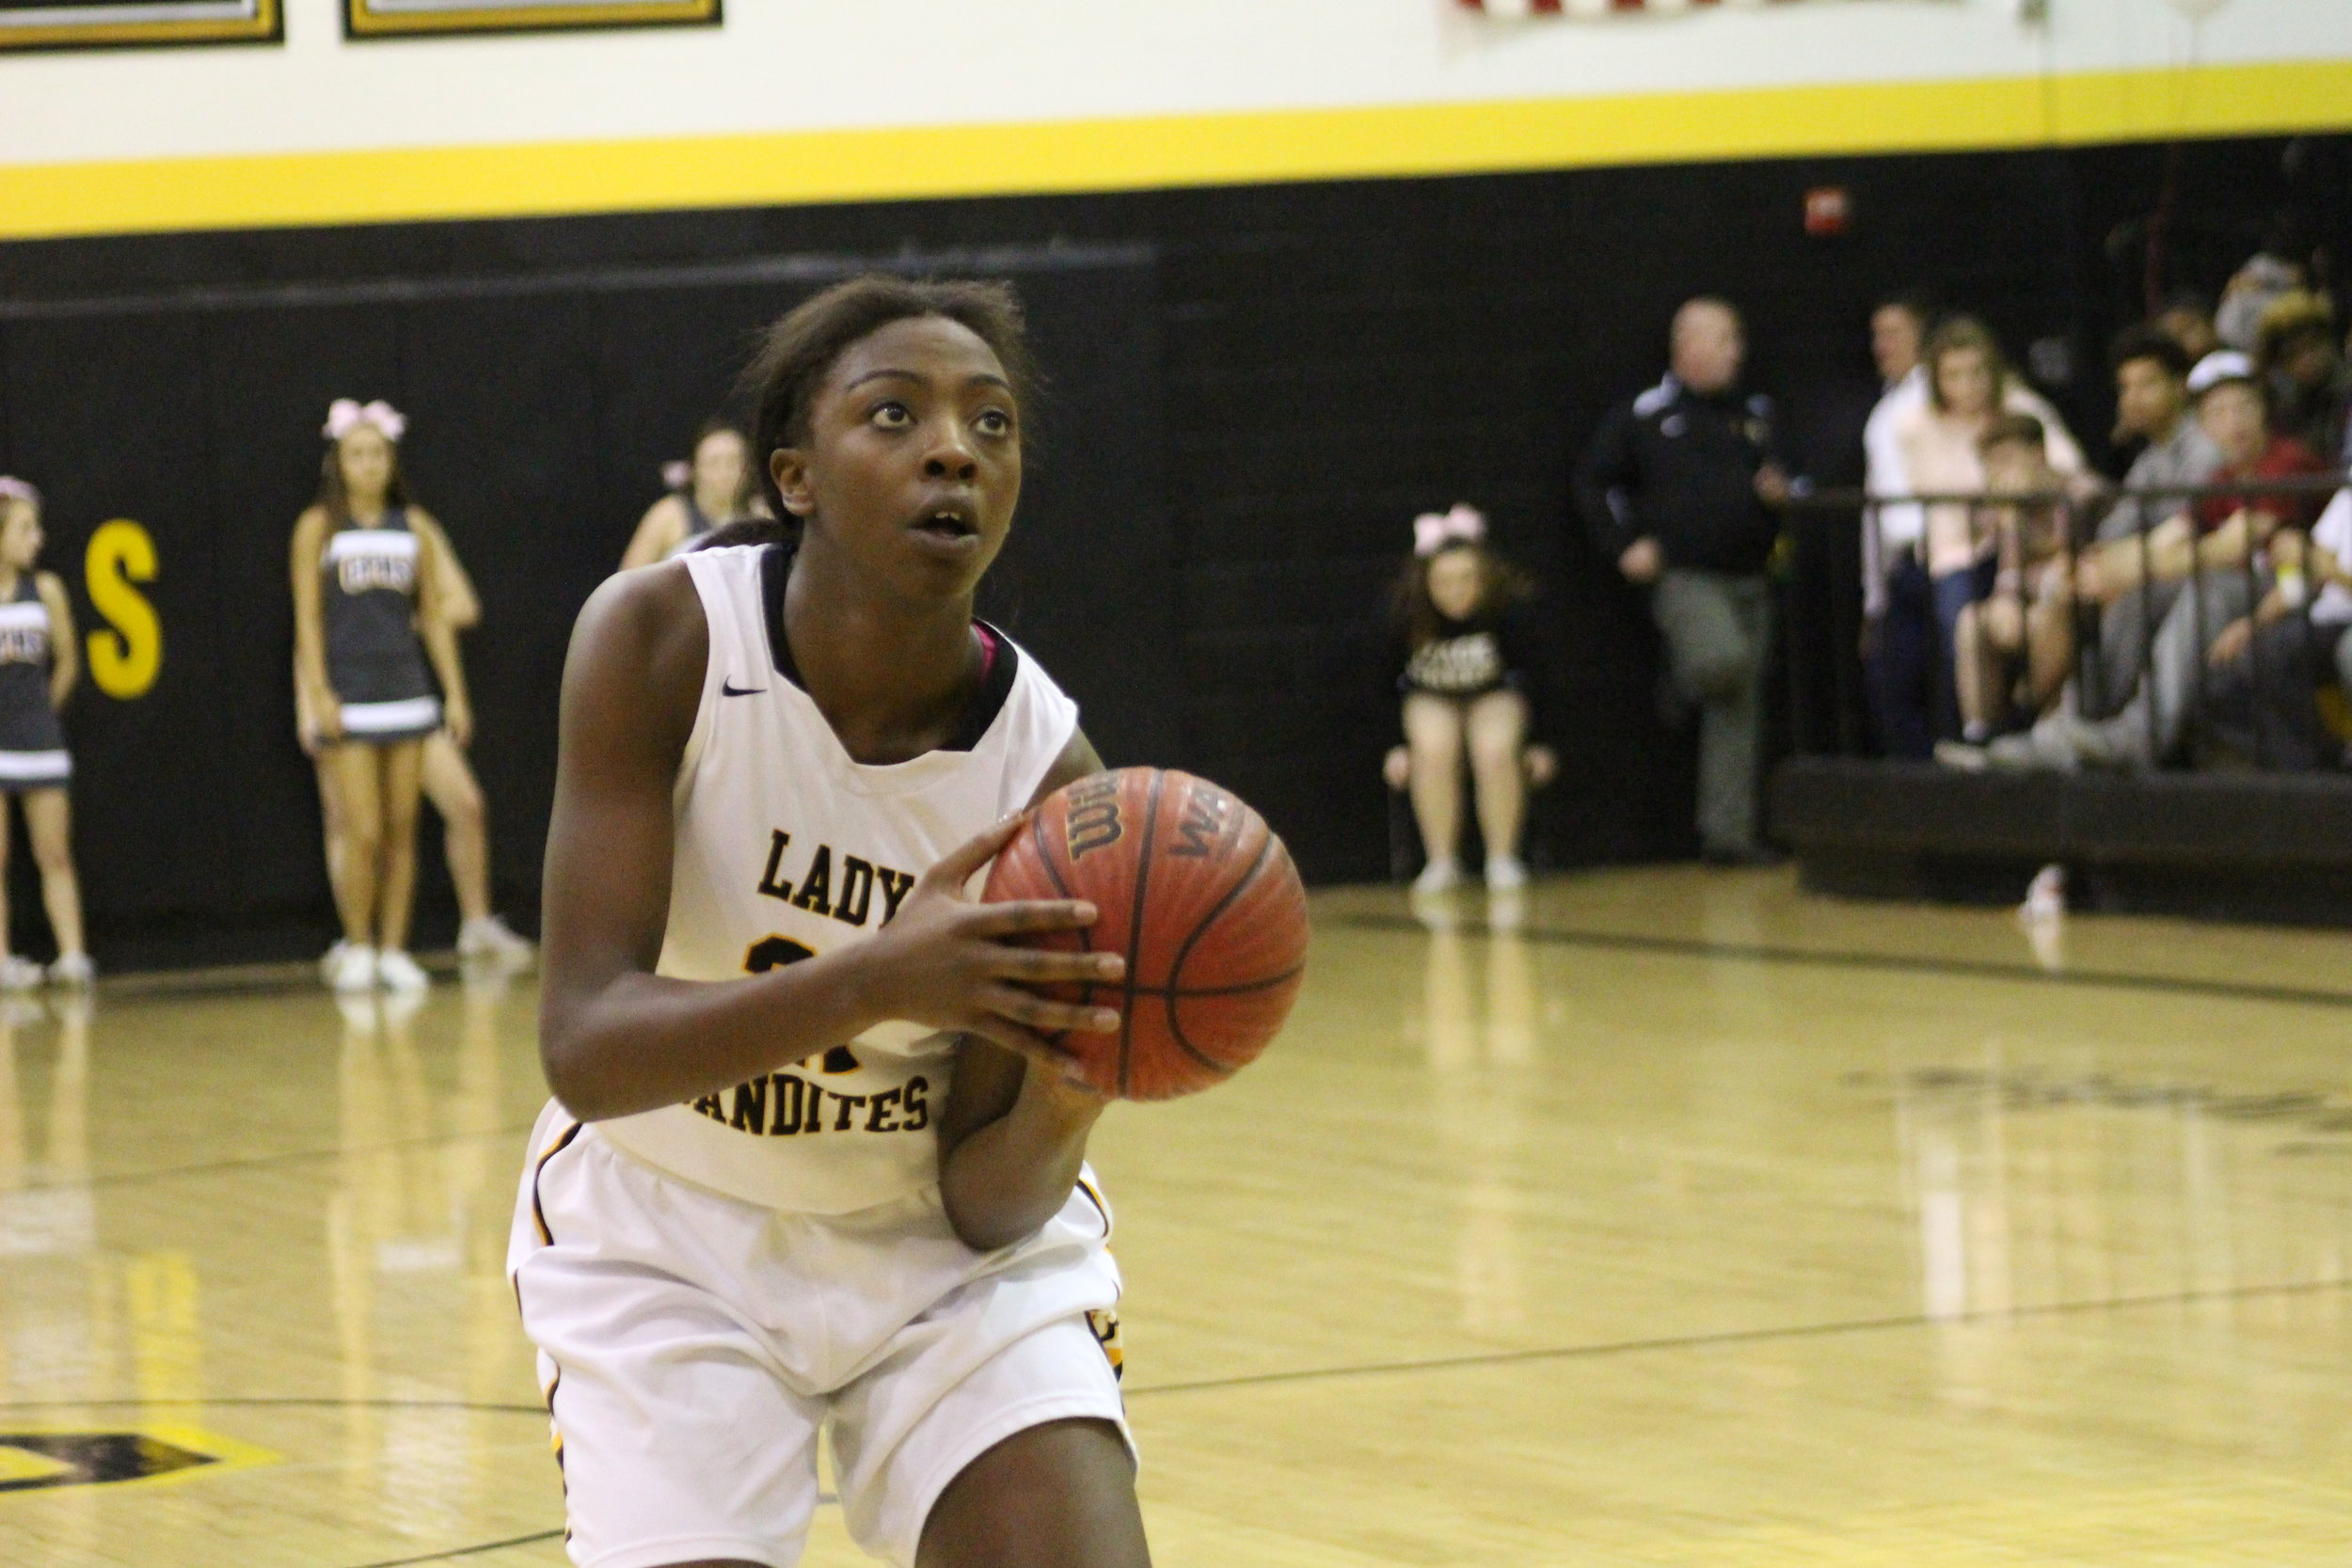 CPHS junior Gloria Mutiri led all scorers with 17 points and 13 rebounds against the Muskogee Lady Roughers. (Photo: Morgan Miller).